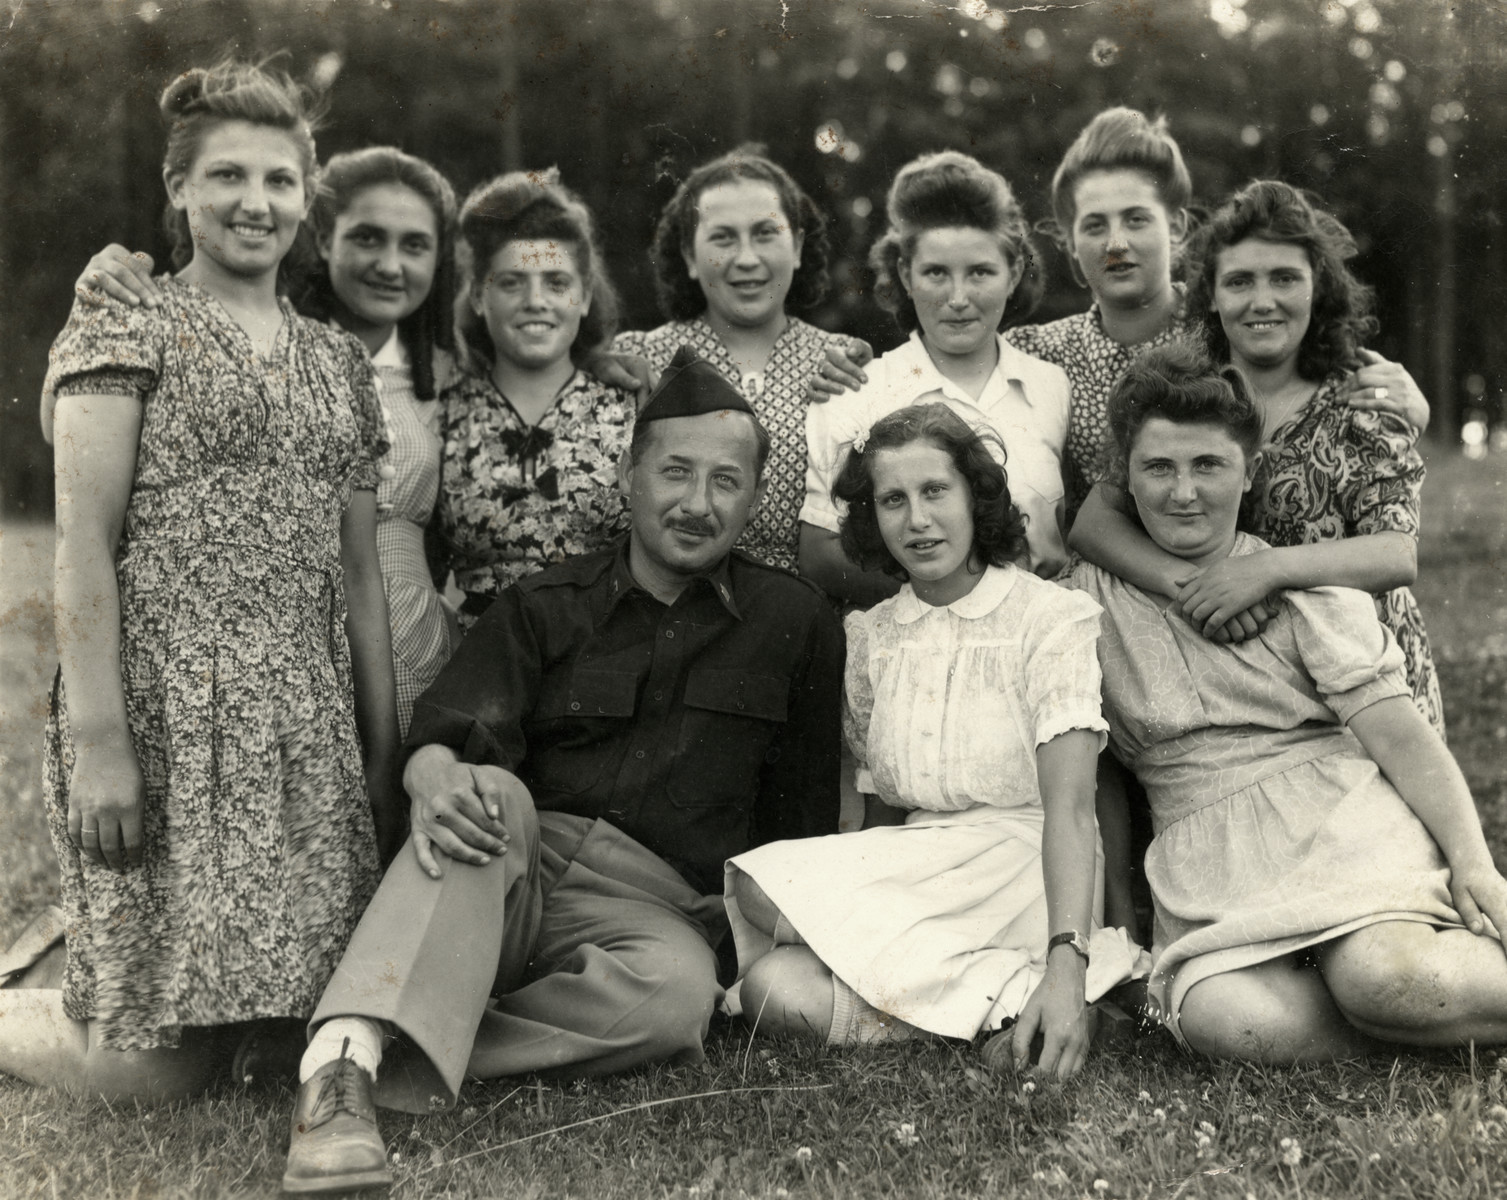 Rabbi Robert Marcus poses with young women from Kibbutz Buchenwald.   Mali Lamm is third from right in the top row.